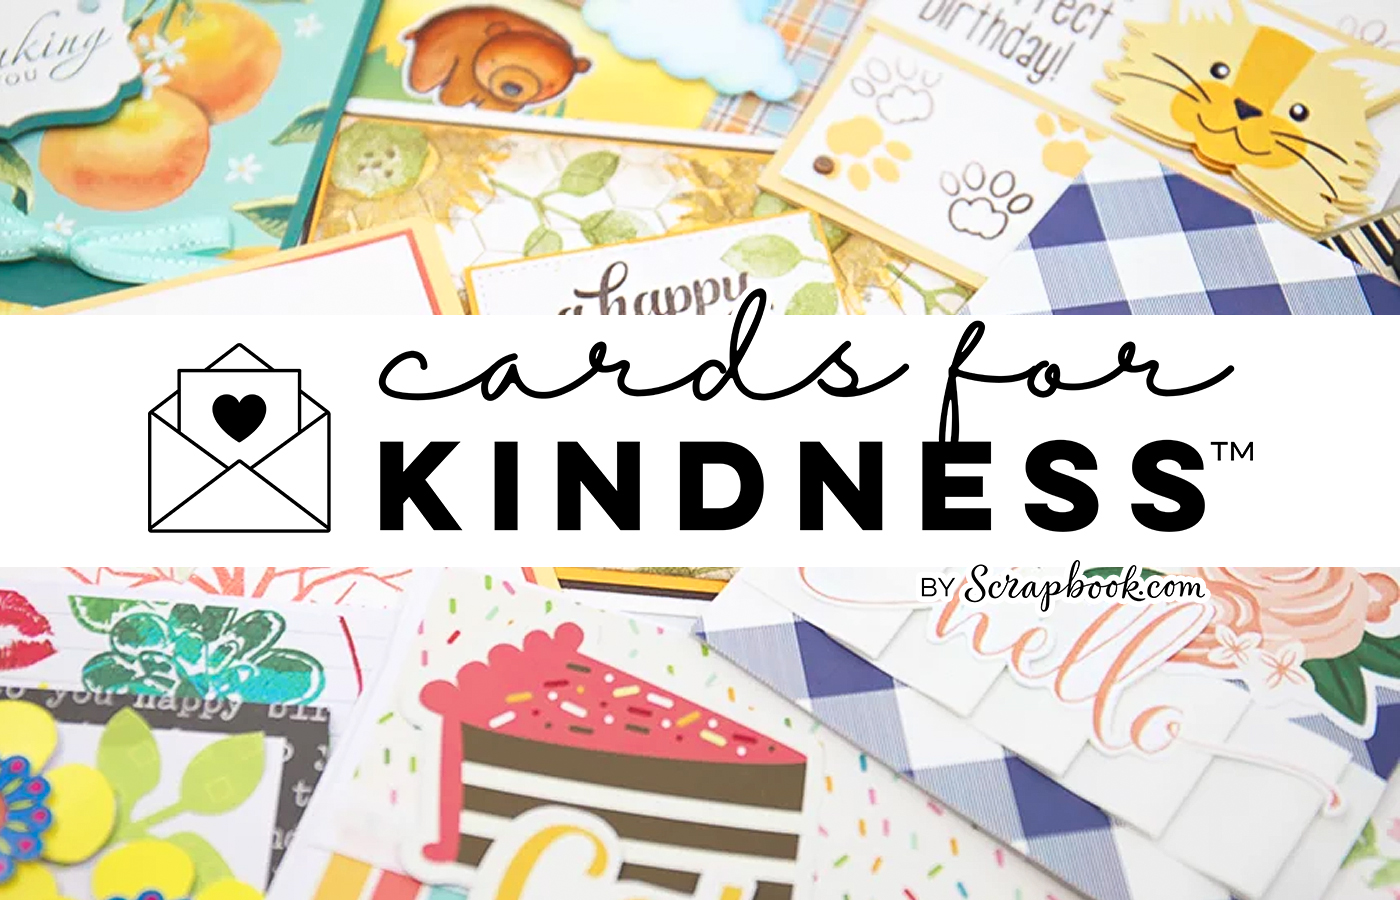 cards for kindness image